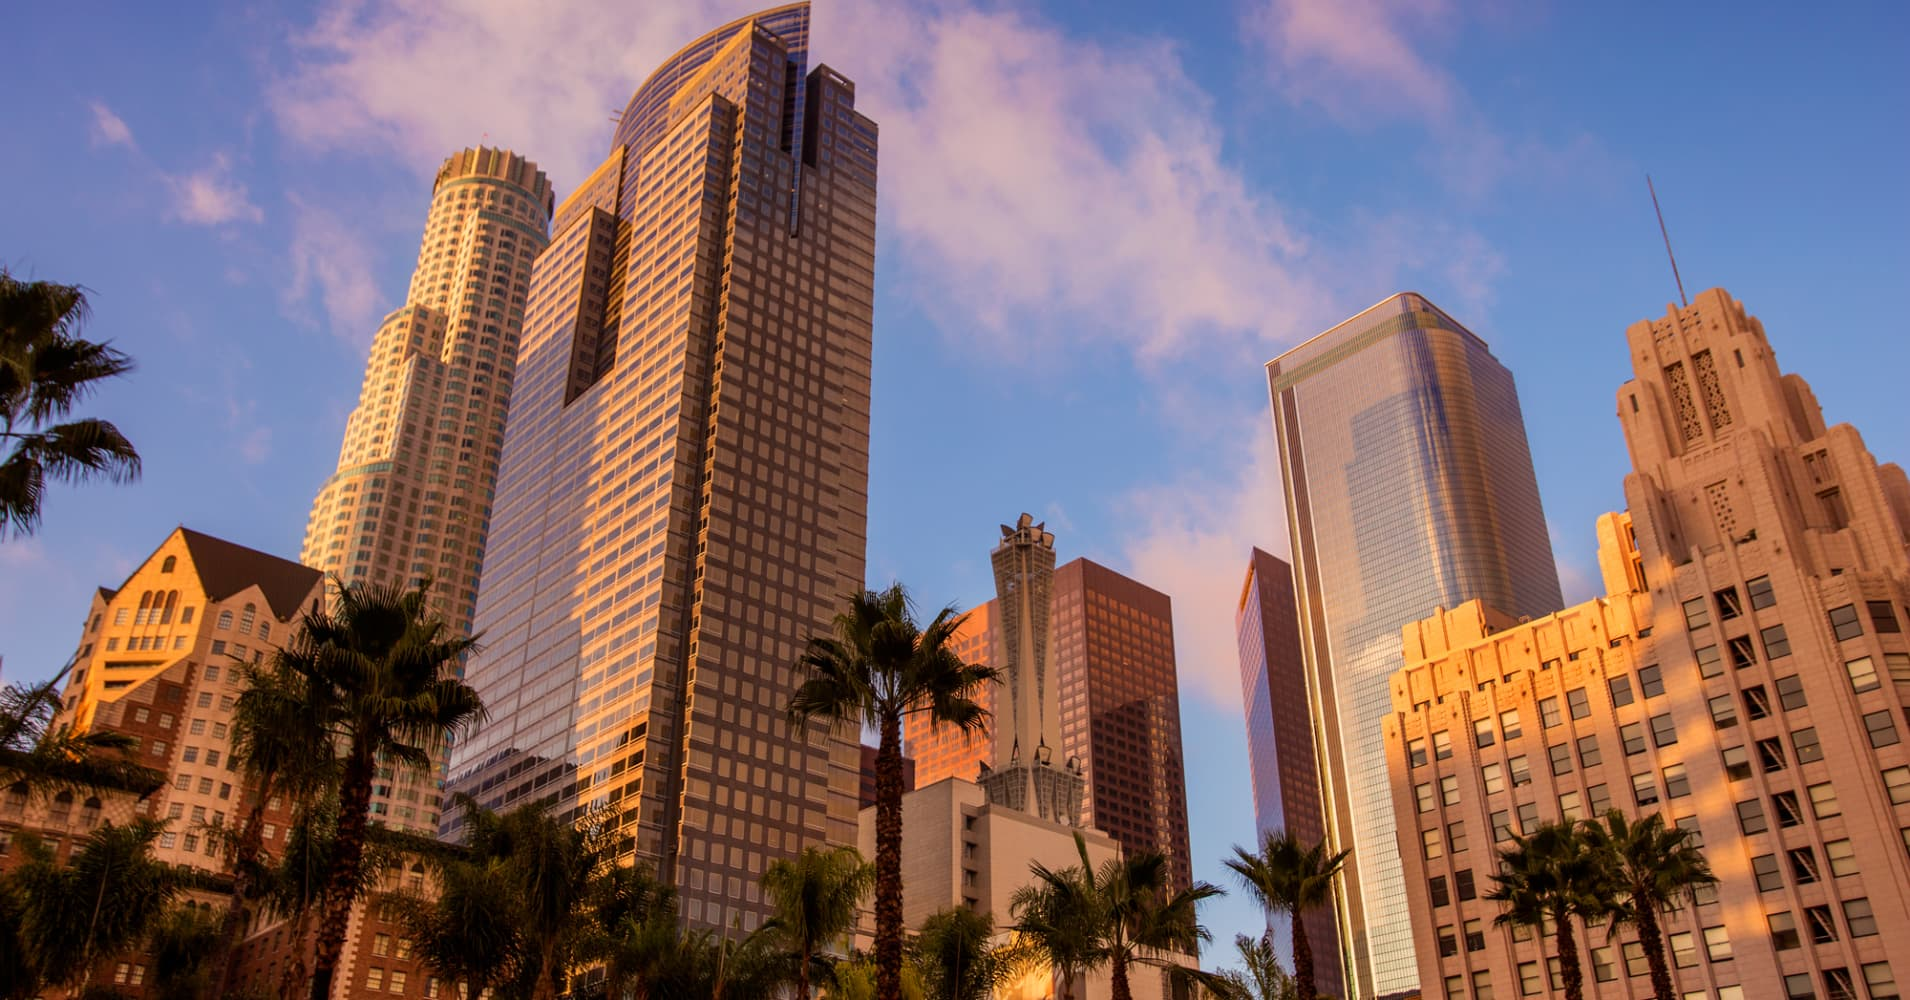 Los Angeles housing market loses star status